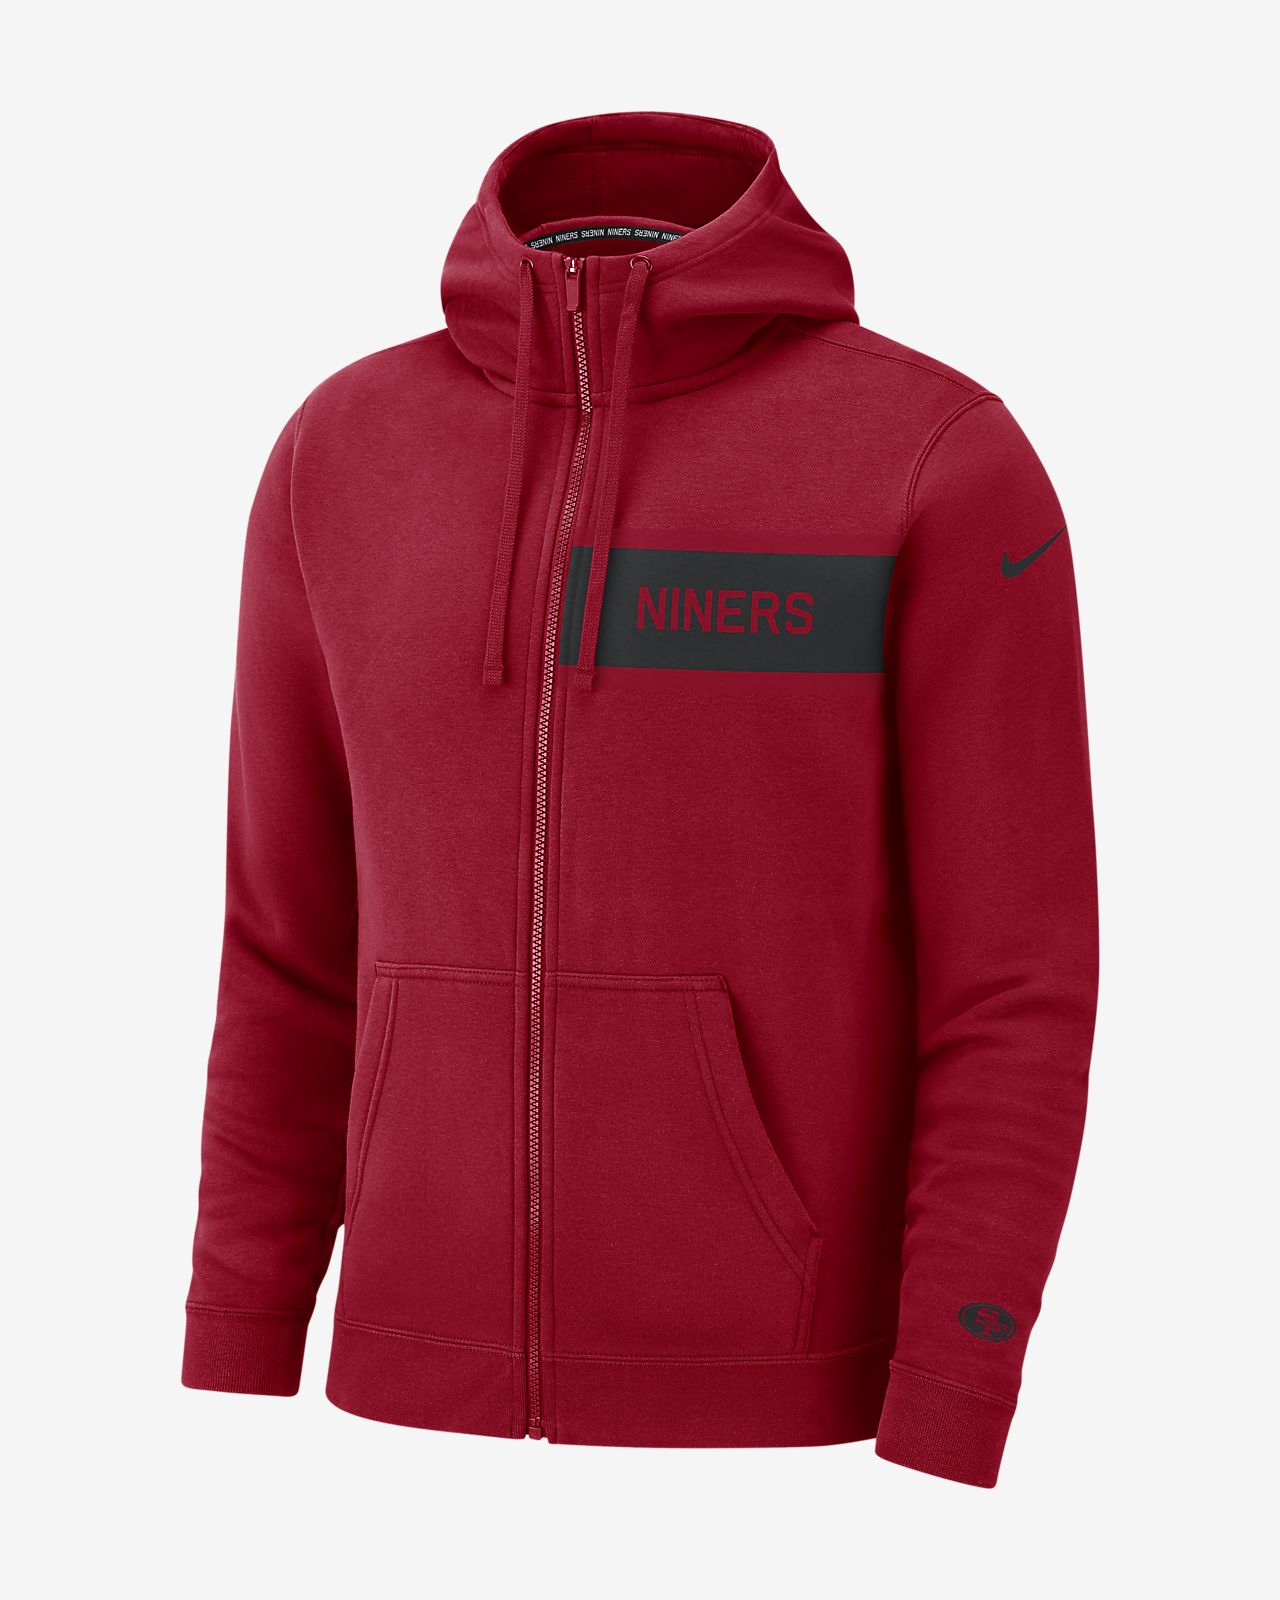 da48857879c8 Nike (NFL 49ers) Men s Club Fleece Full-Zip Hoodie. Nike.com ZA